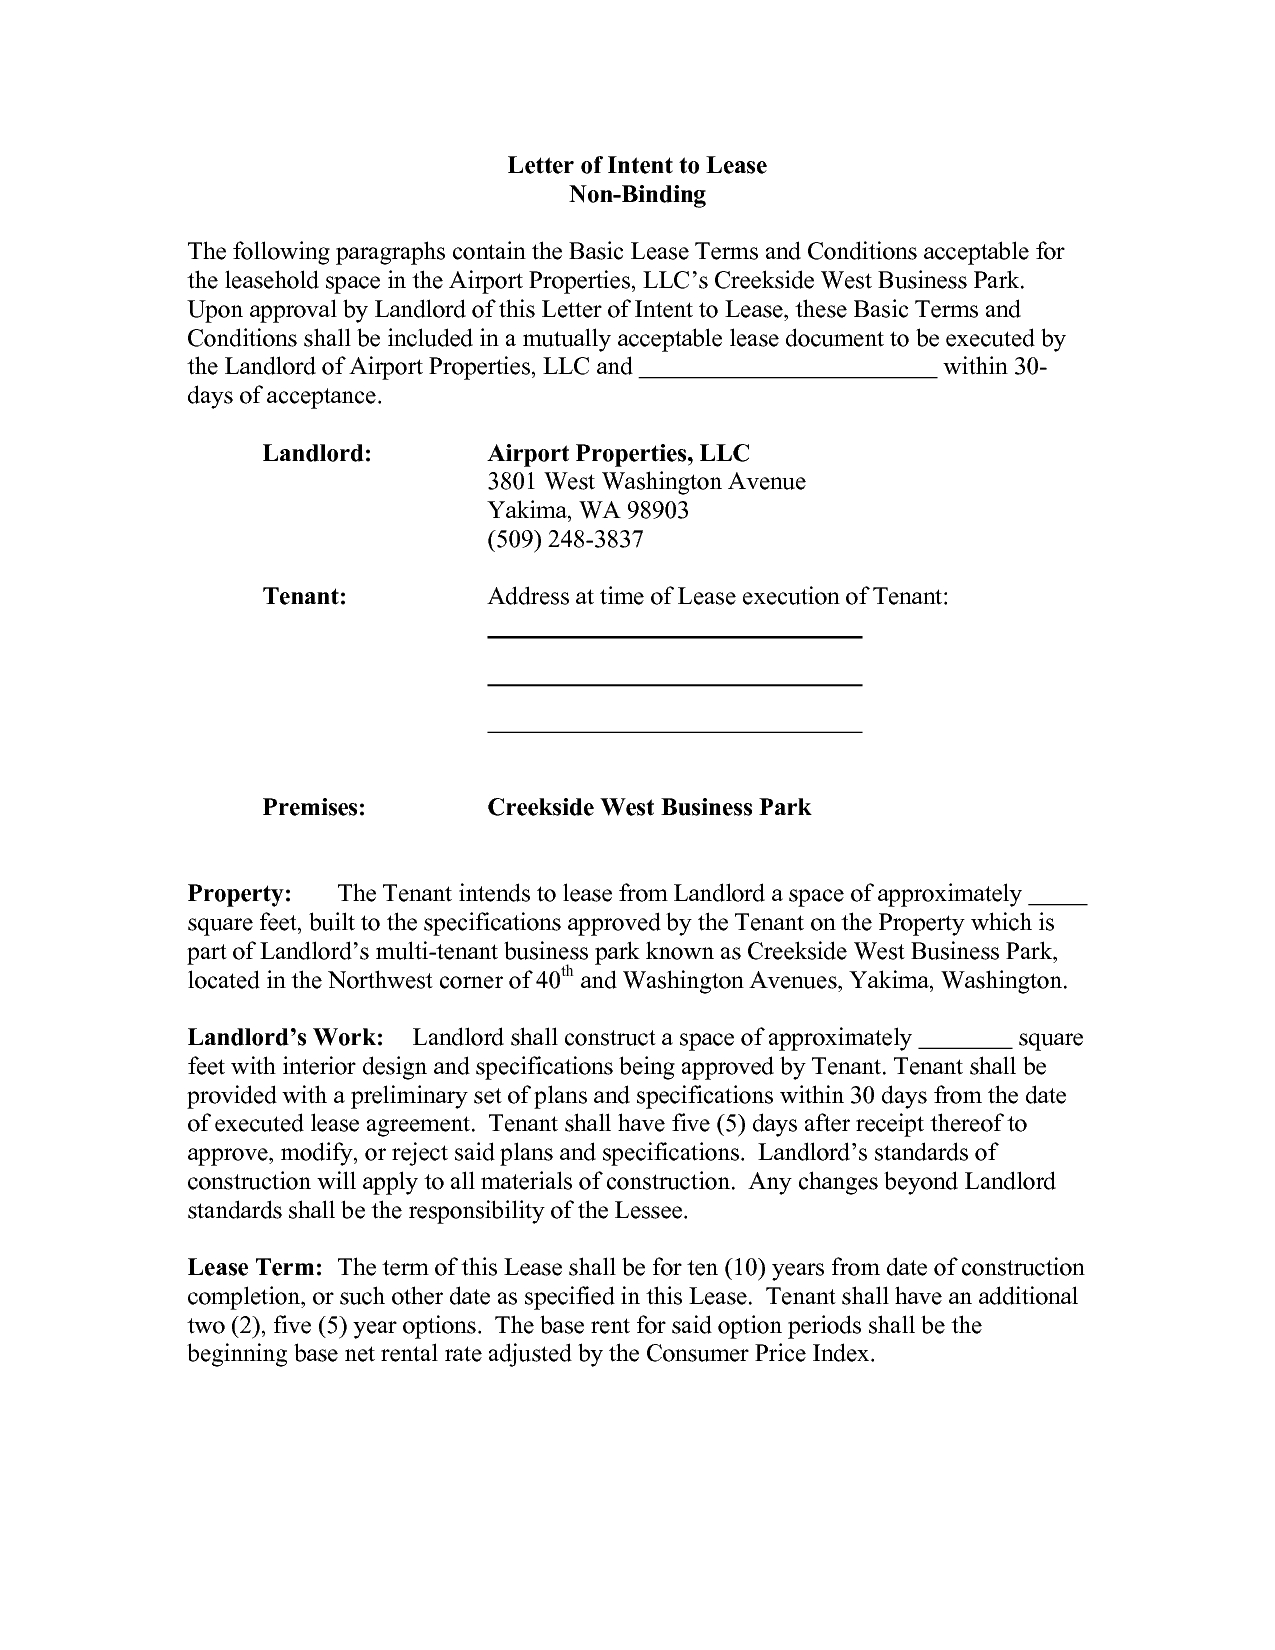 Free Letter Of Intent to Lease Commercial Space Template - Best Ideas Letter Intent Real Estate Lease Sample Nice Free to